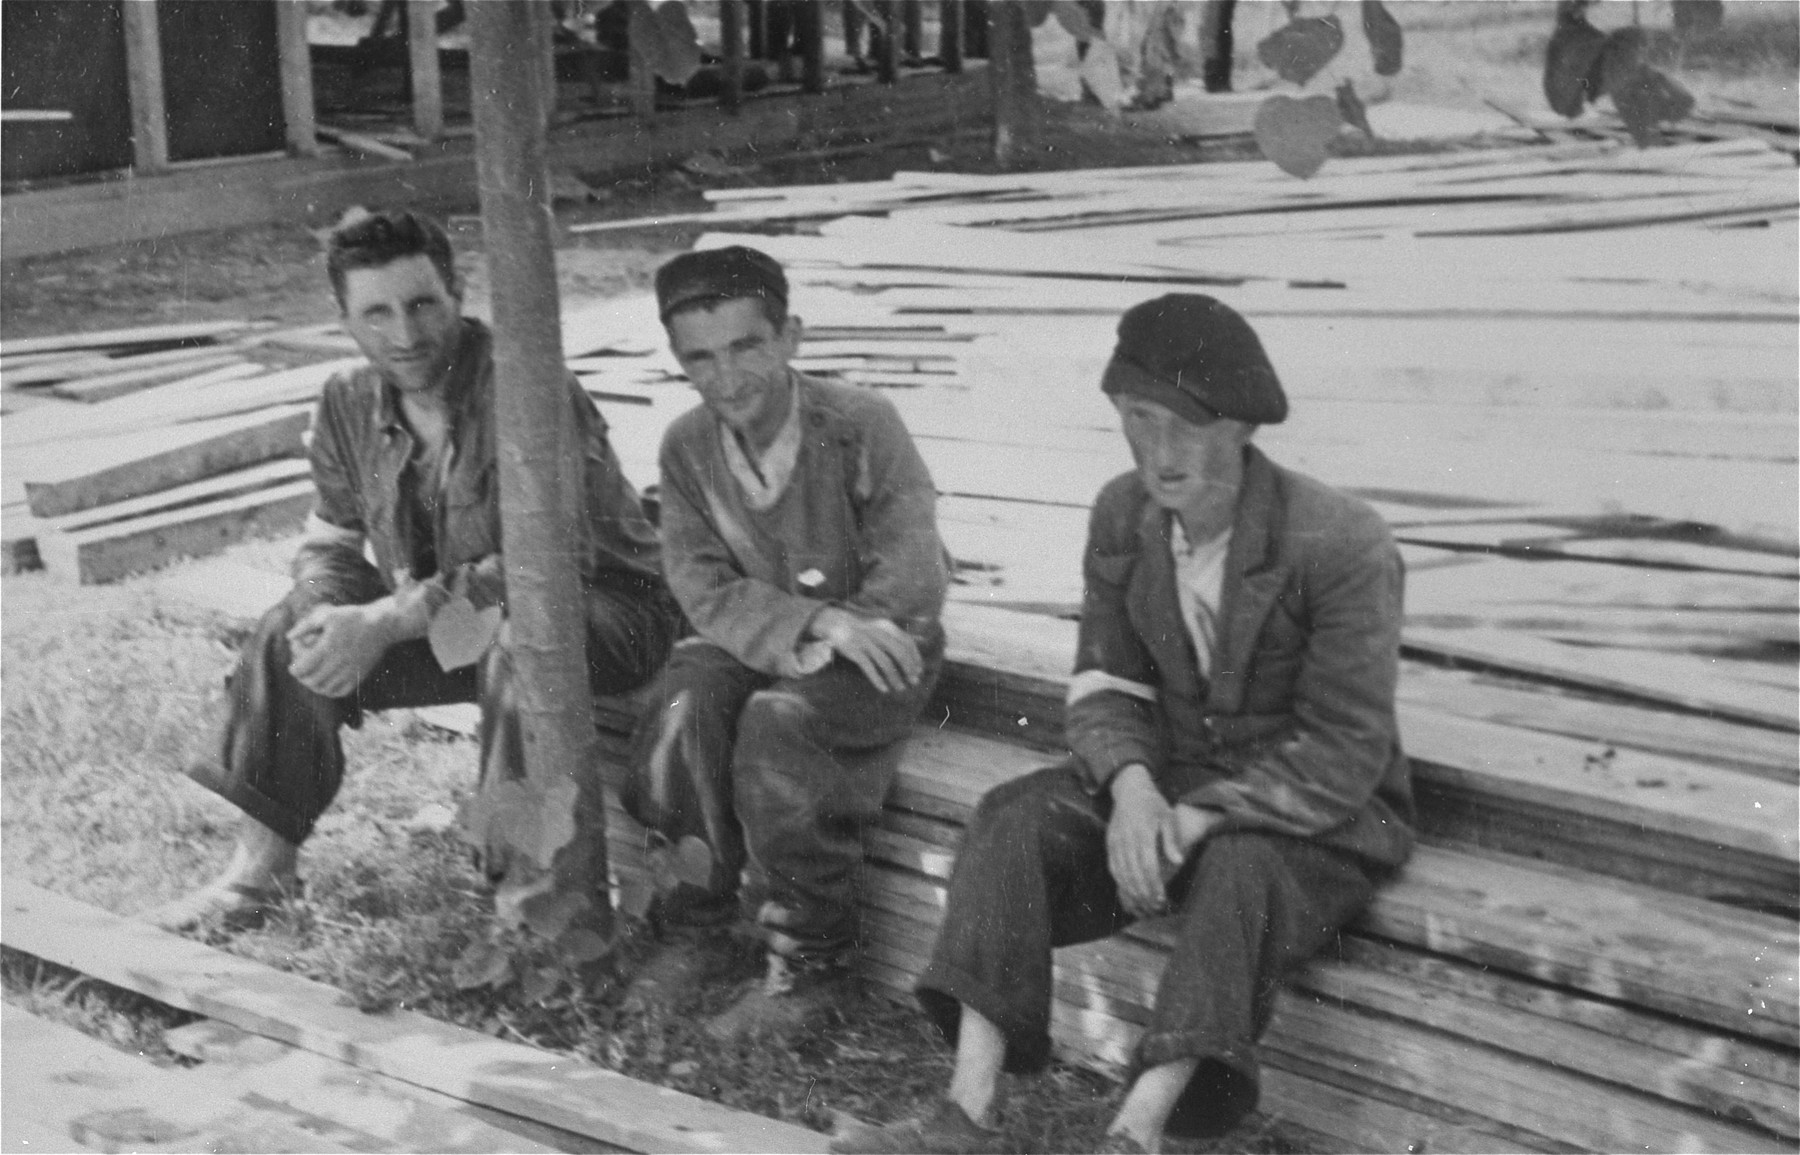 Three Jewish men who have been conscripted for forced labor, sit on a pile of lumber in Konskowola.